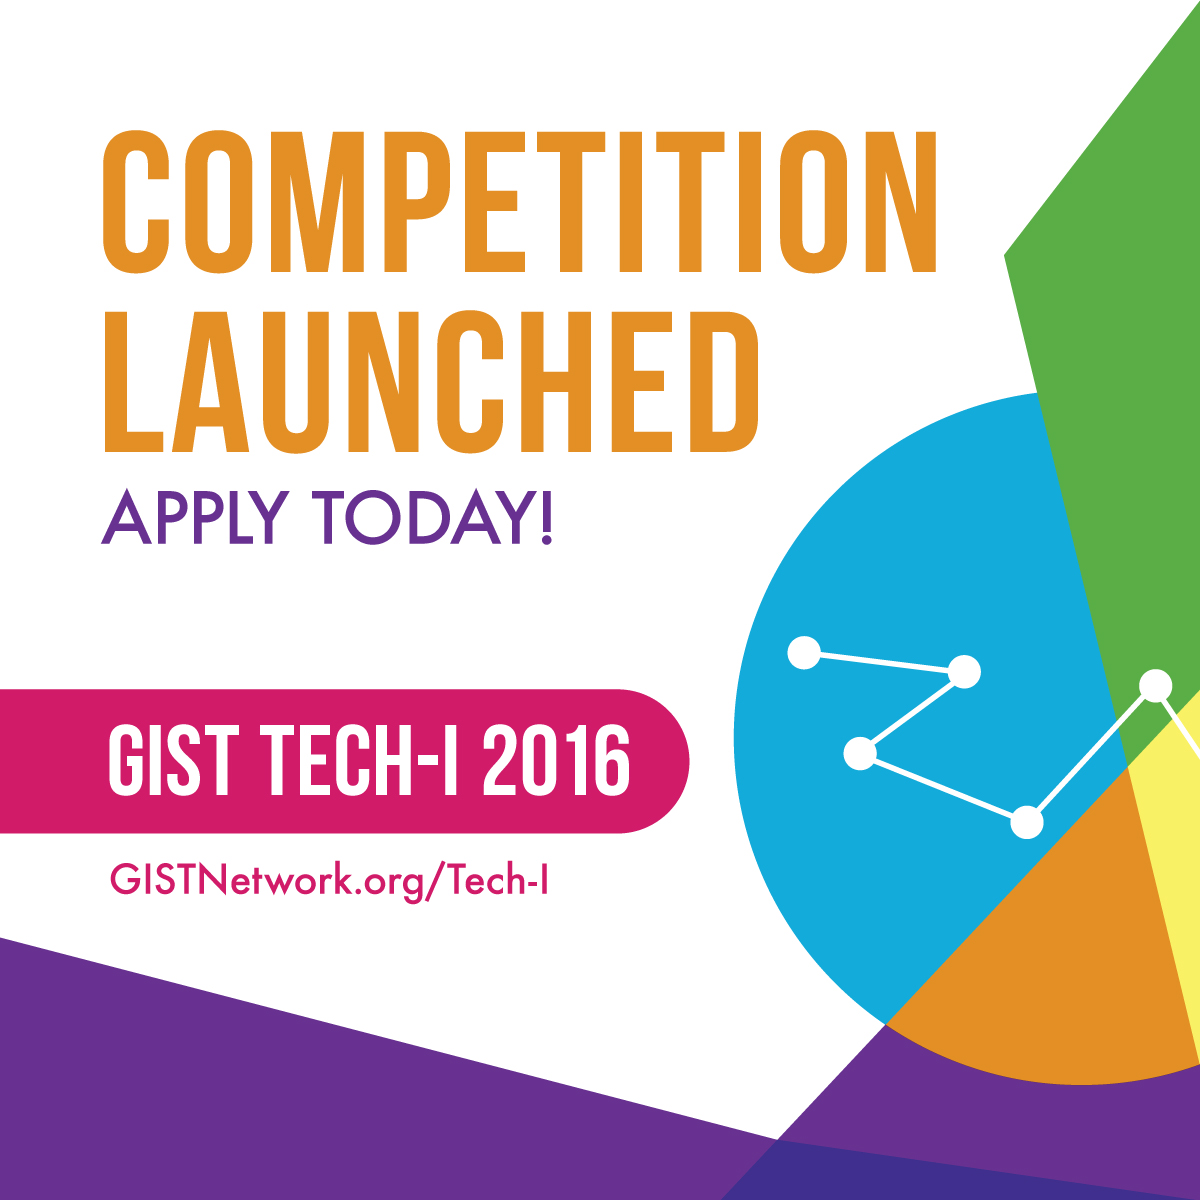 Gist Tech I Competition Launches